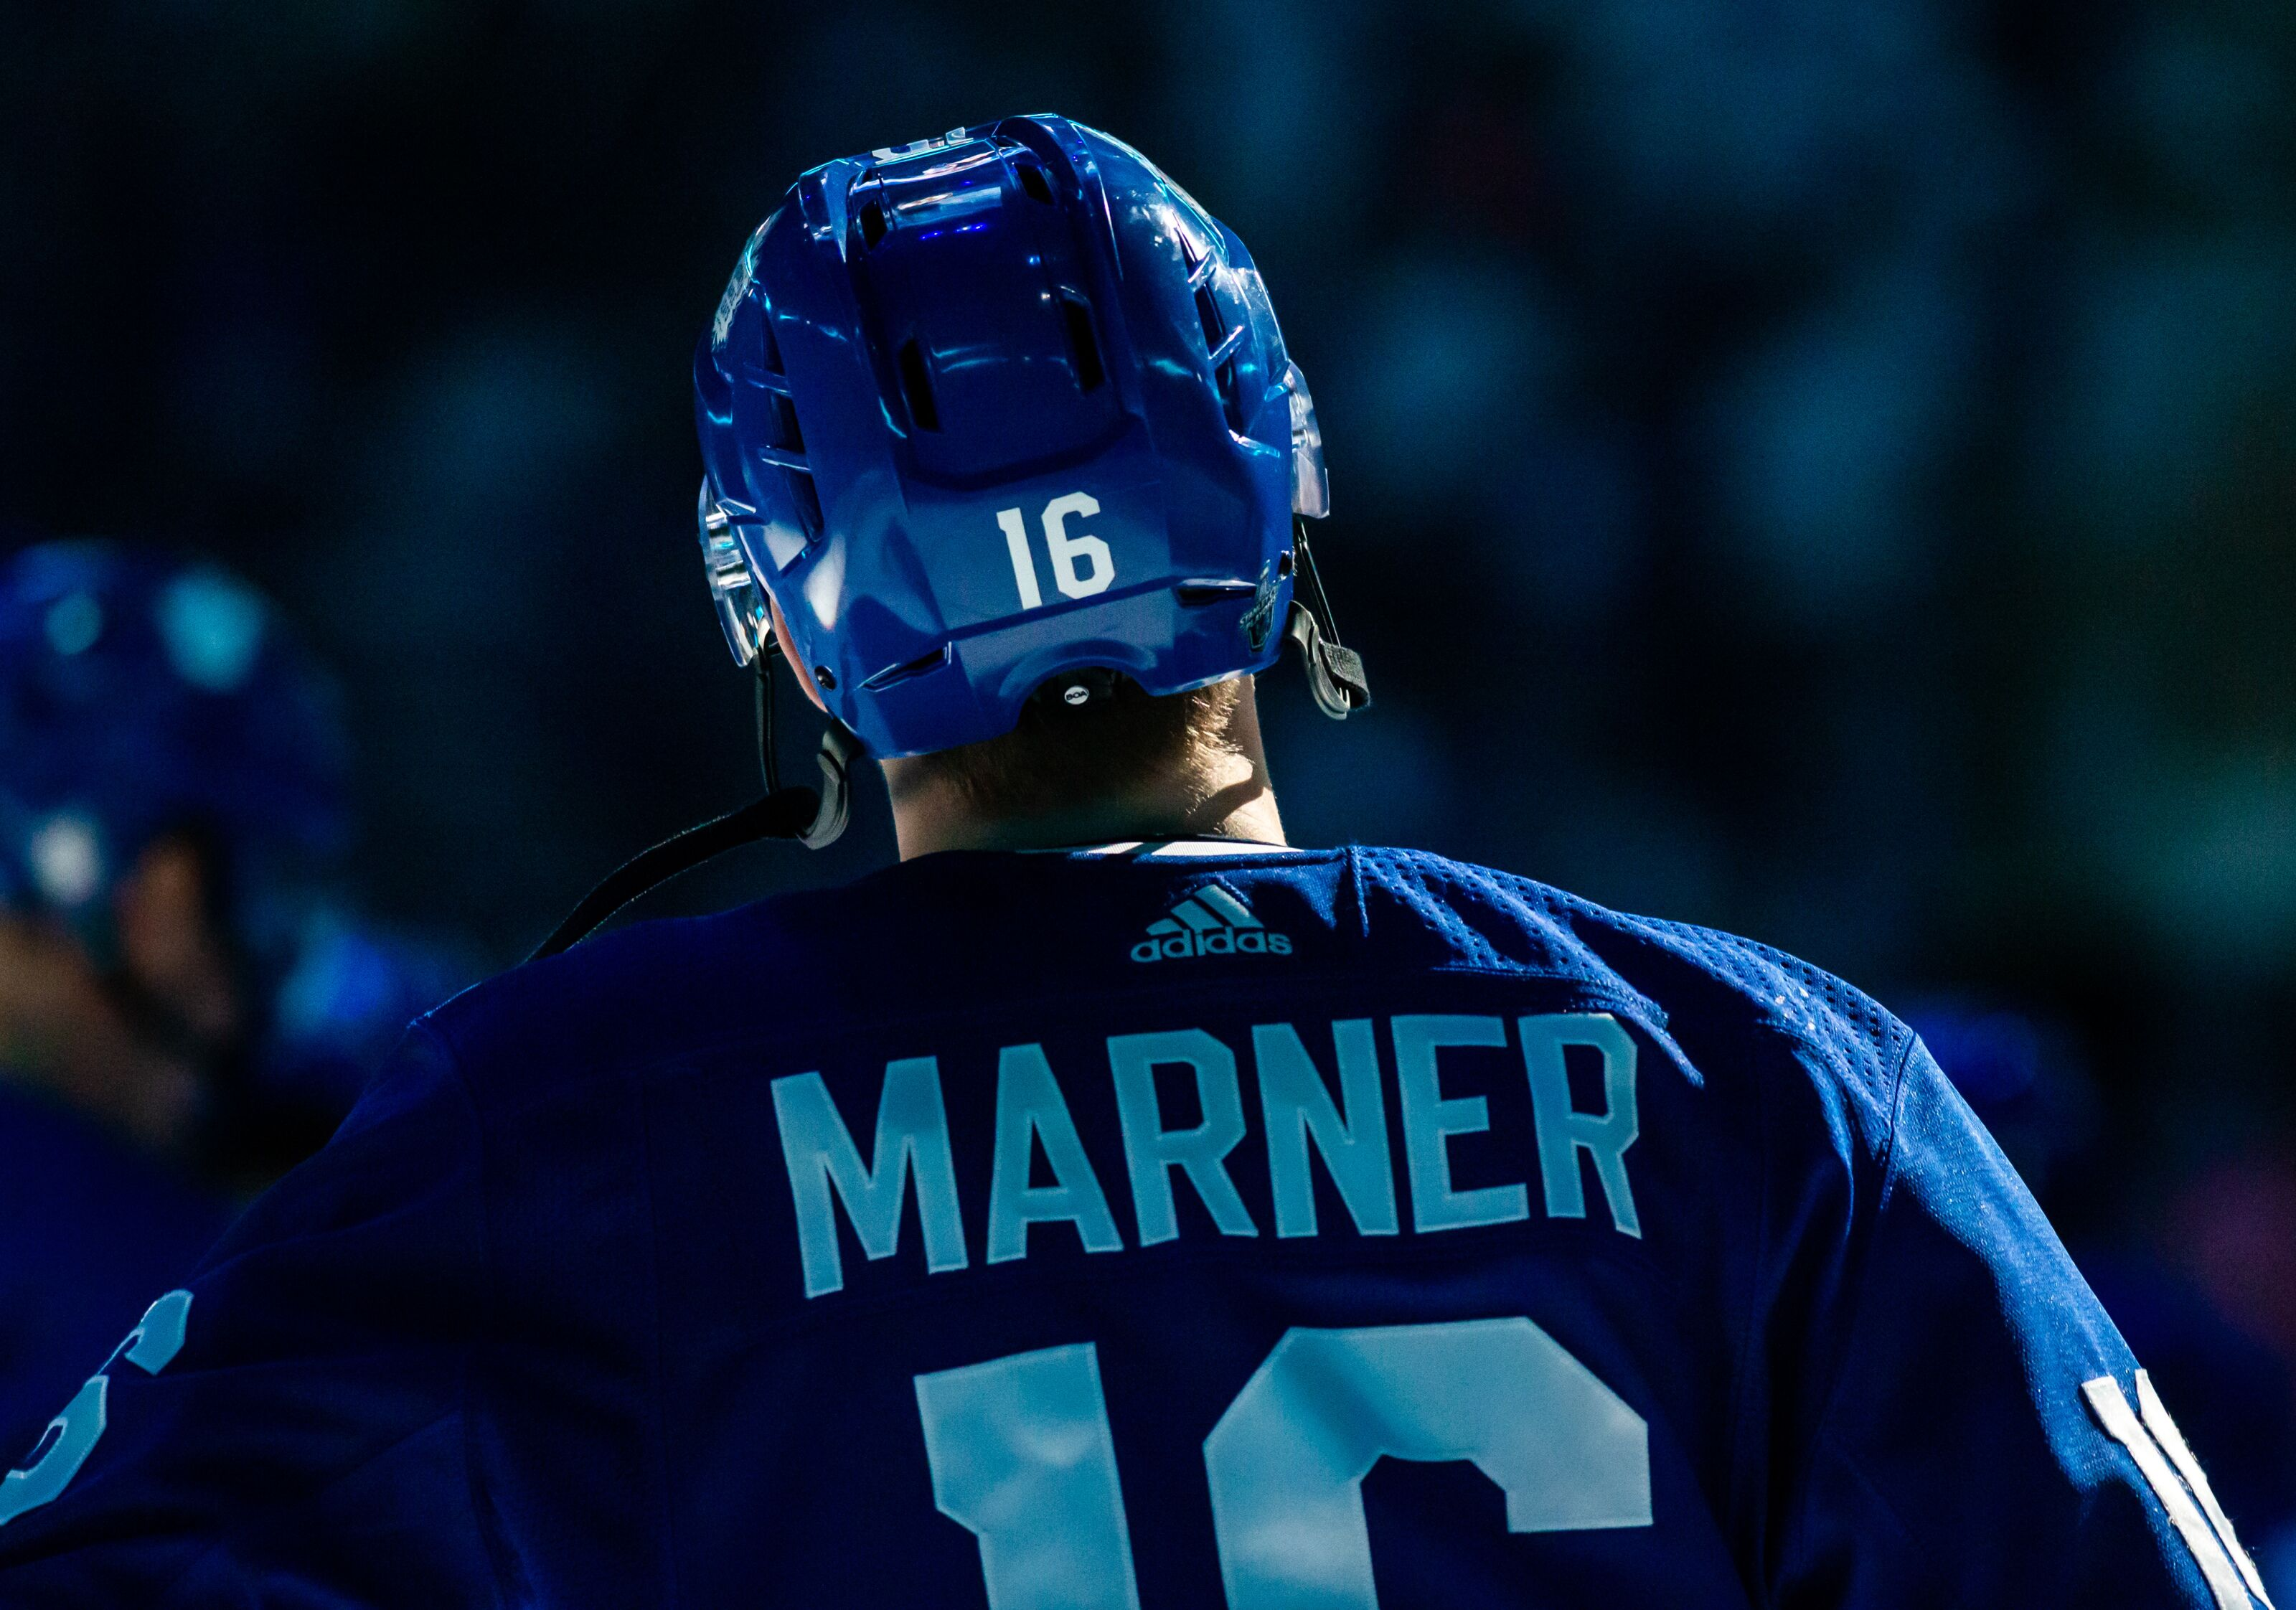 Mitch Marner wins his negotiation battle with the Toronto Maple Leafs